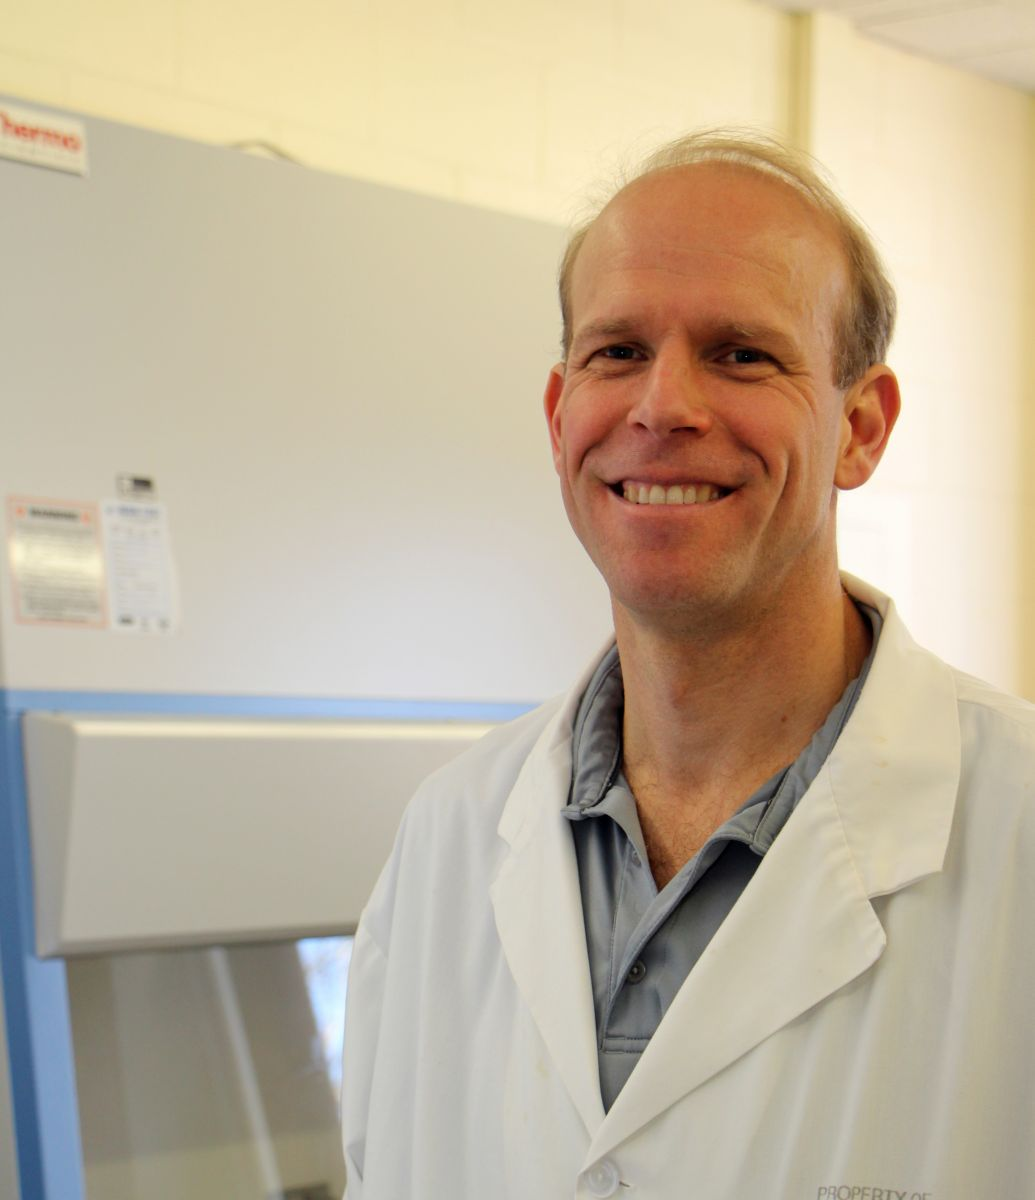 Prof. Scott Weese, Department of Pathobiology, Ontario Veterinary College, University of Guelph.